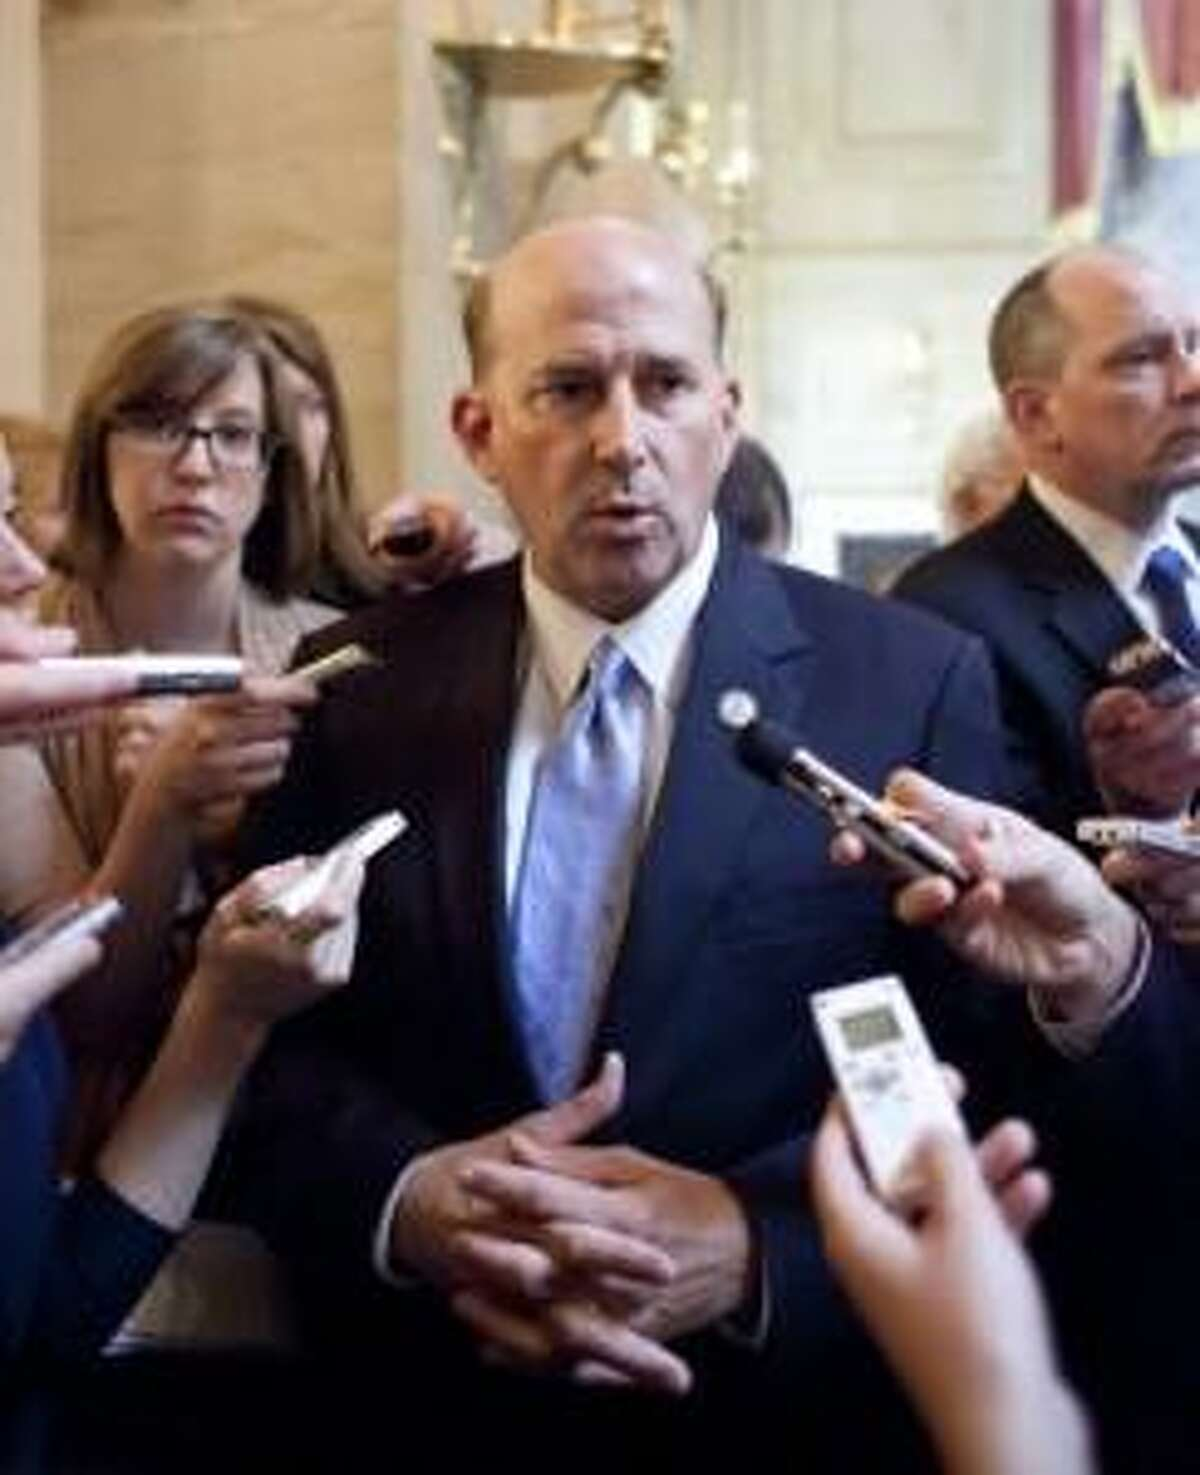 Rep. Louie Gohmert, R-Tyler. Click to see the strangest things he's said.